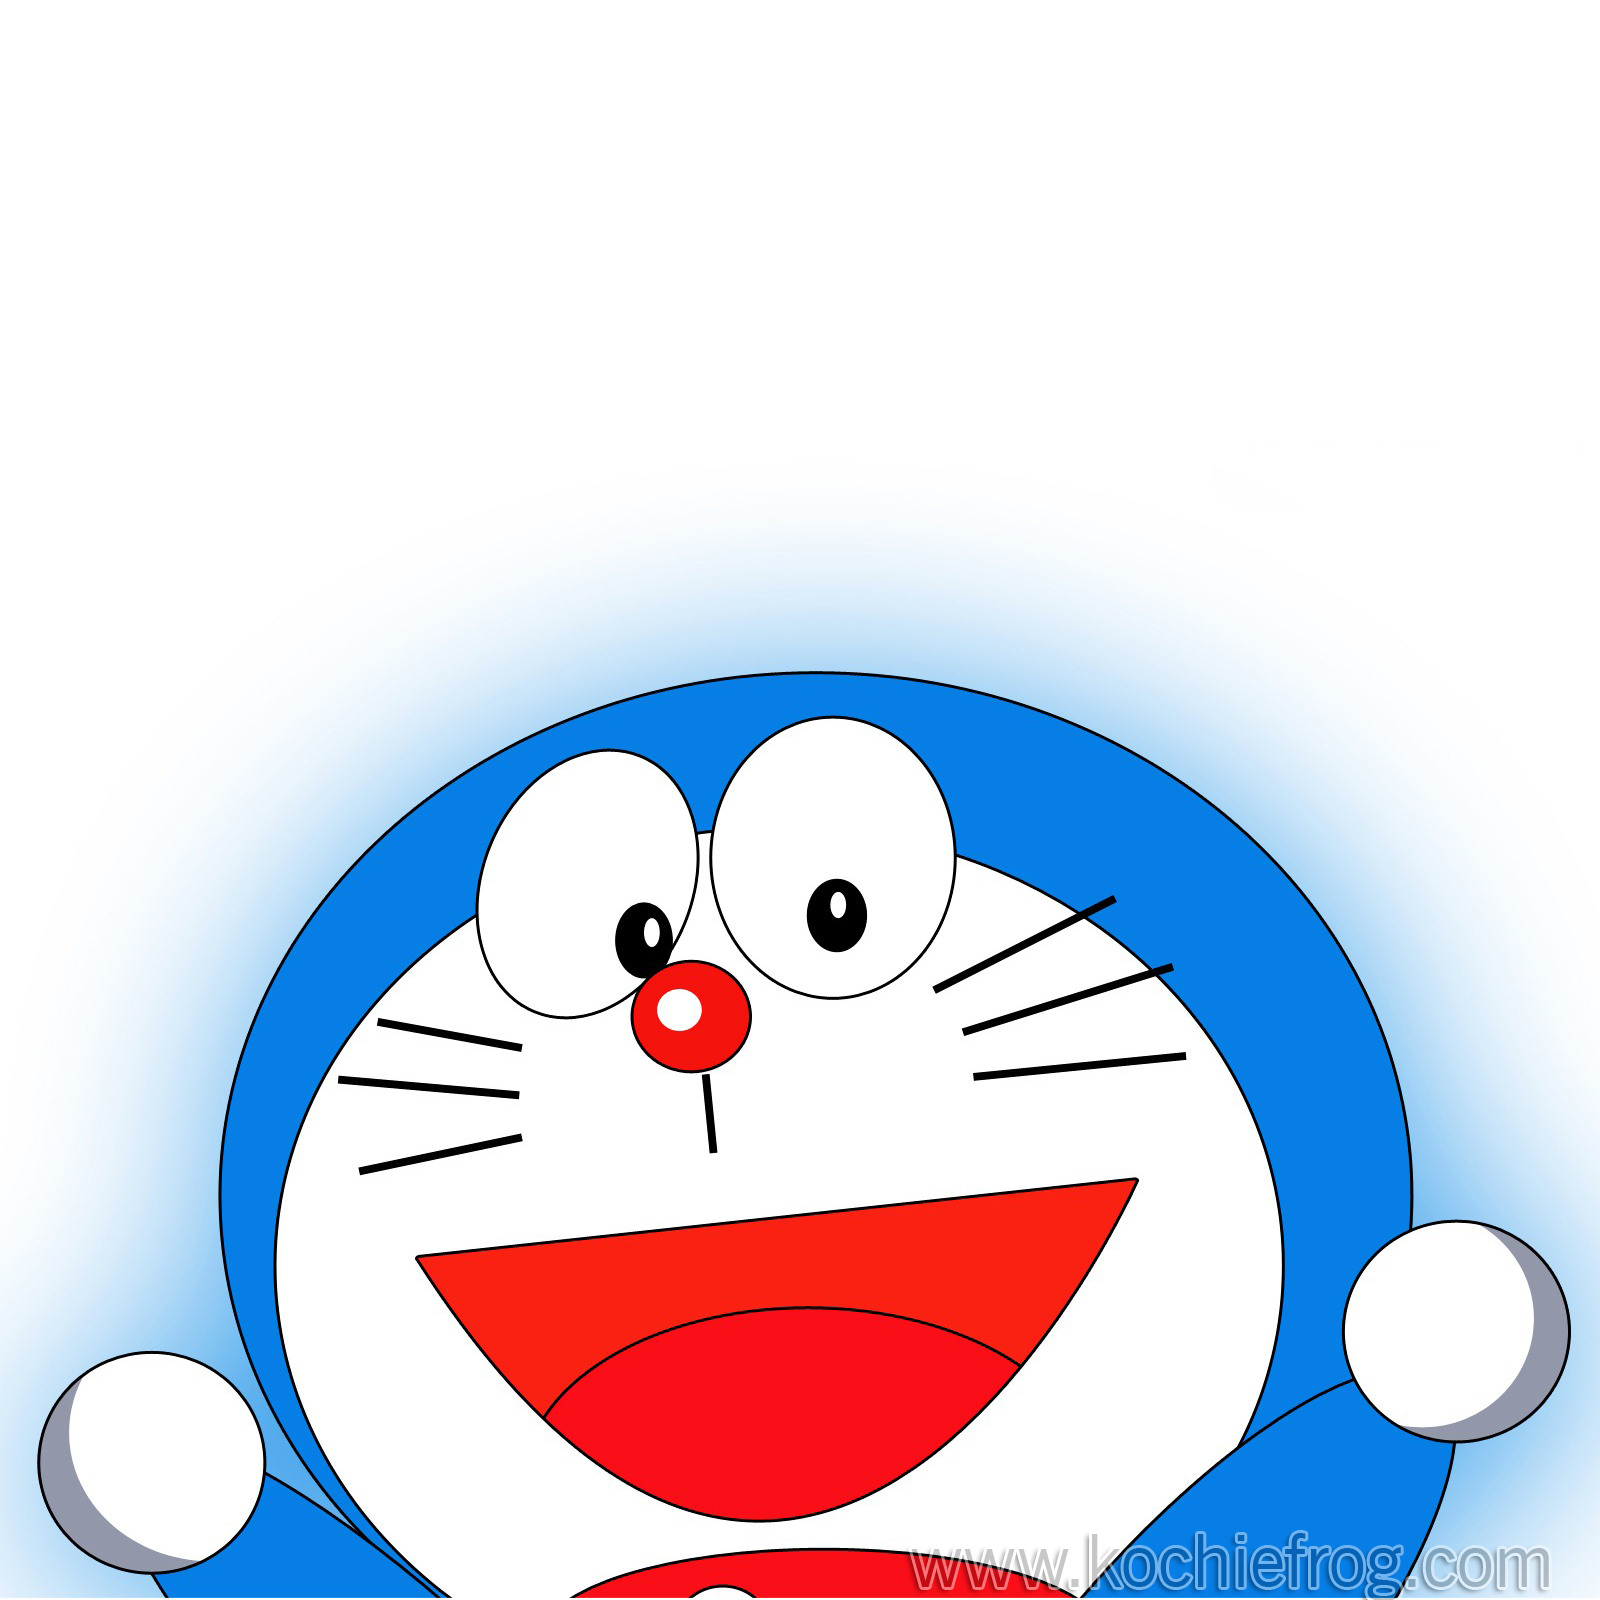 Wallpaper Doraemon Lucu Untuk Android Djiwallpaper Co